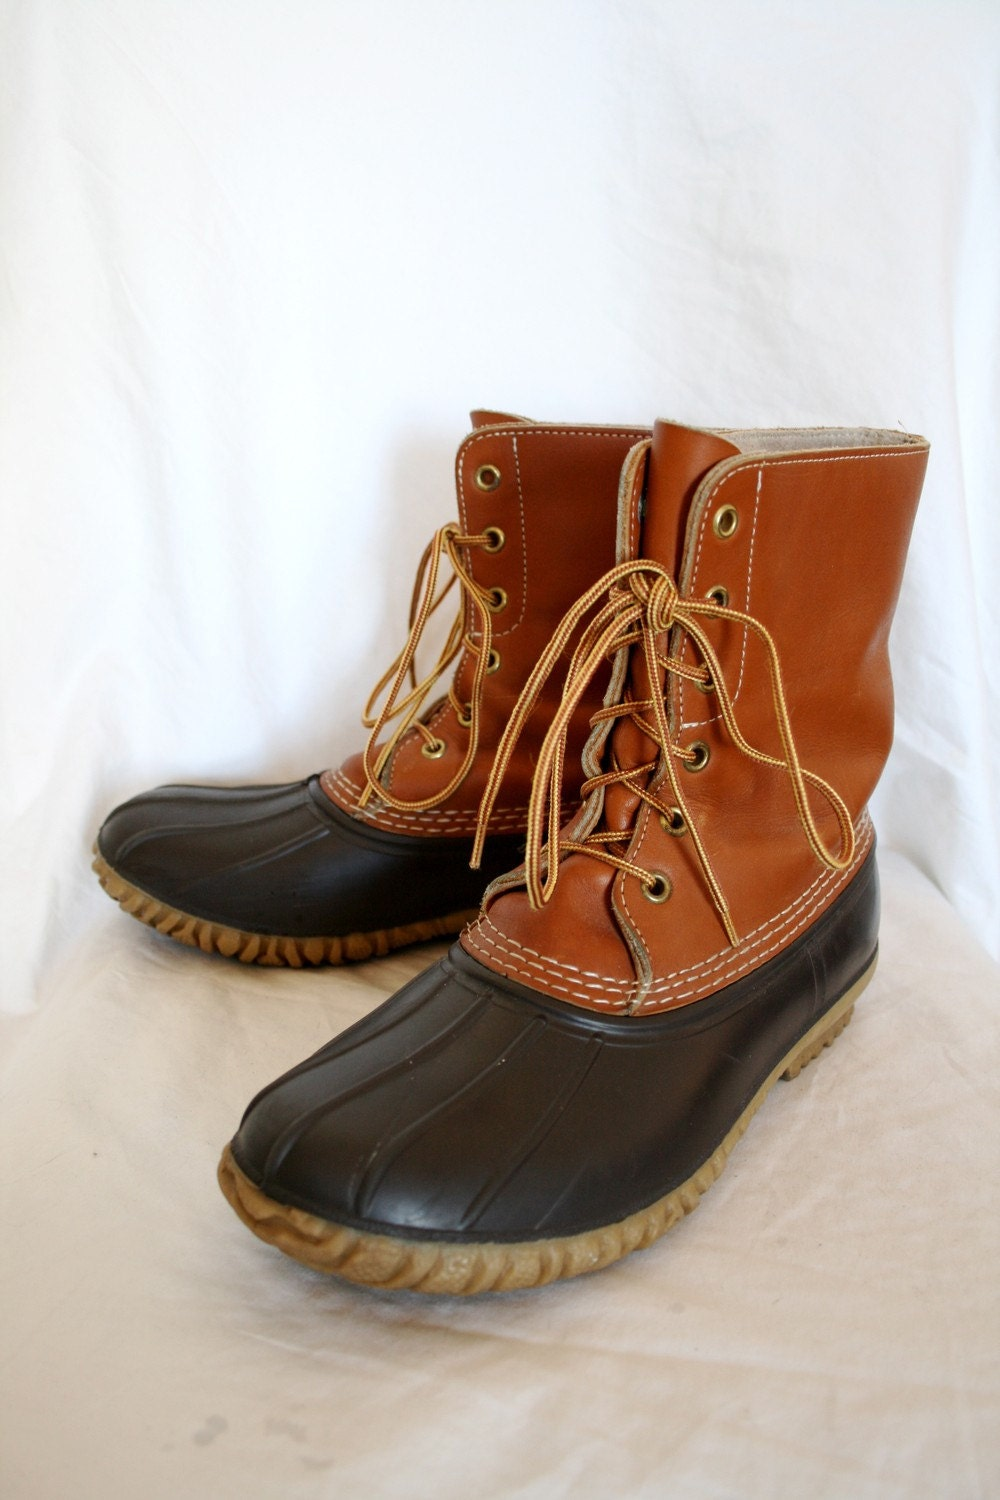 Elegant &quotFairly Warm  Oh My Gosh, So Comfortable!&quot Says Regina Toe Warmers Womens Active Boots, $8595, Amazoncom &quotMy Favorite! Sheepskin From Toes To Top Bliss Great Walking Comfort, Good Looking And Waterproof Too! Wish They Were